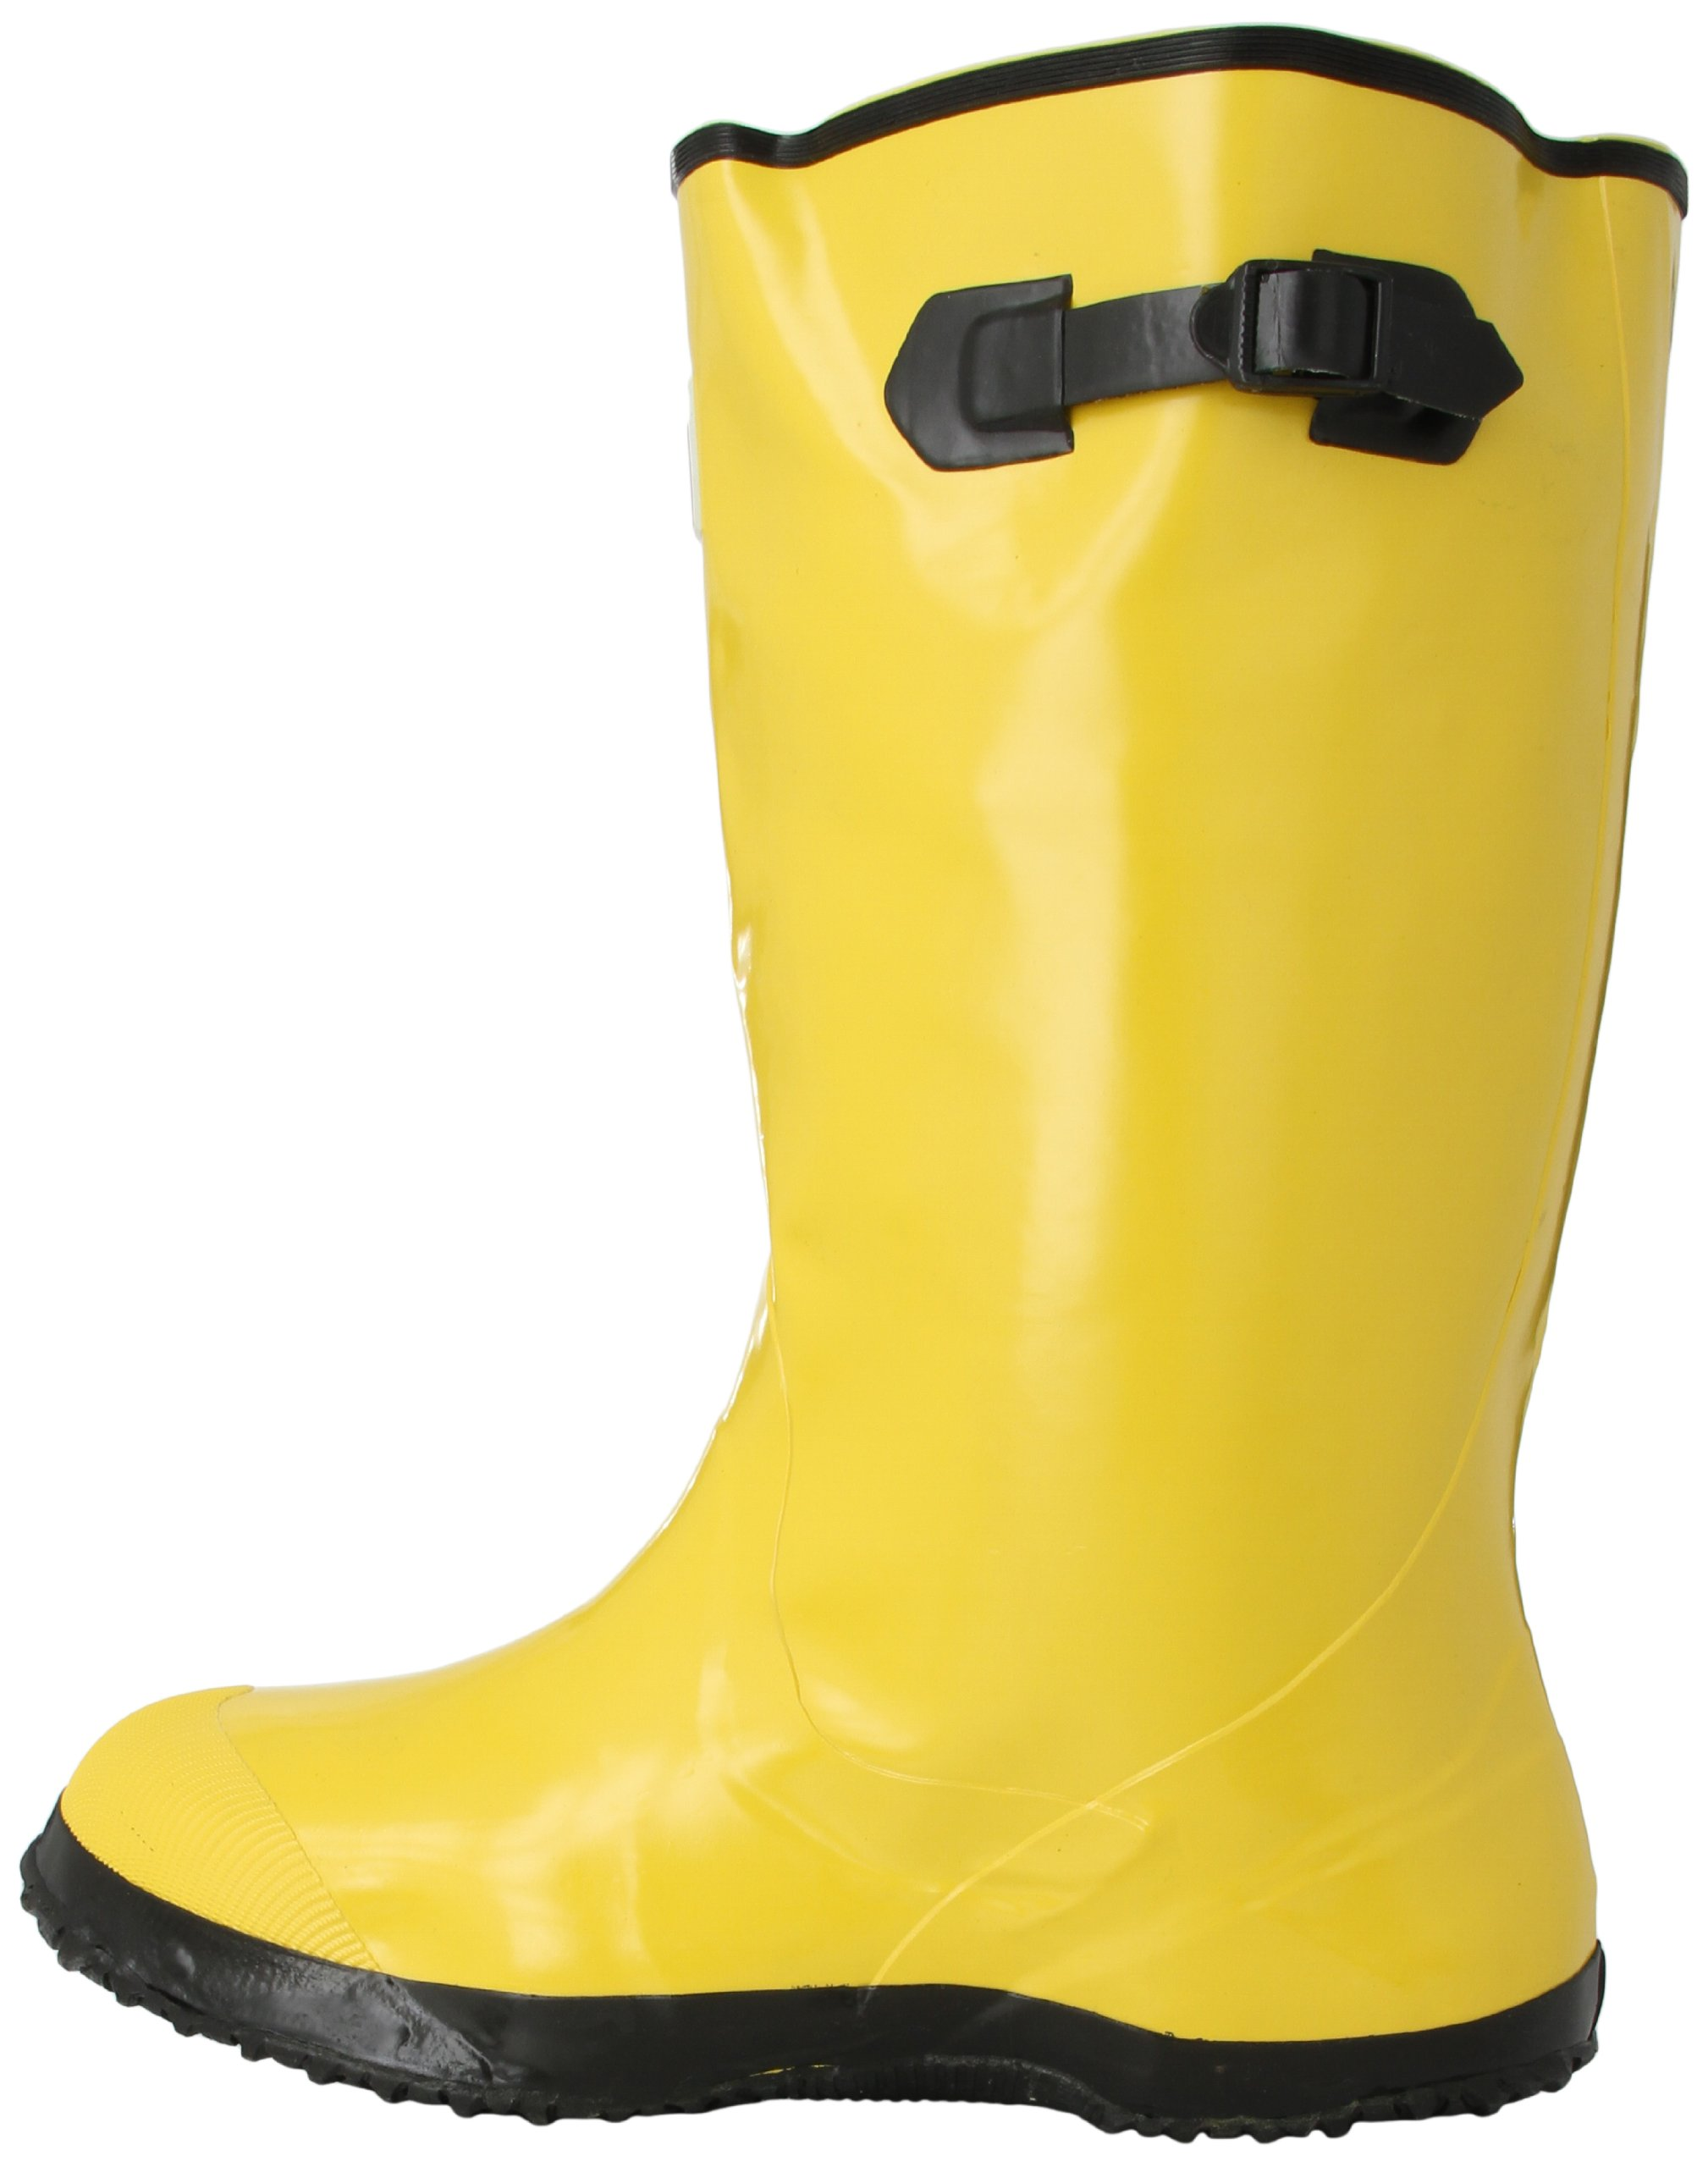 Mutual 14500 Extra Wide Over-The-Shoe Work Slush Boot, 17'' Height, Size 14, Yellow by Mutual Industries (Image #5)